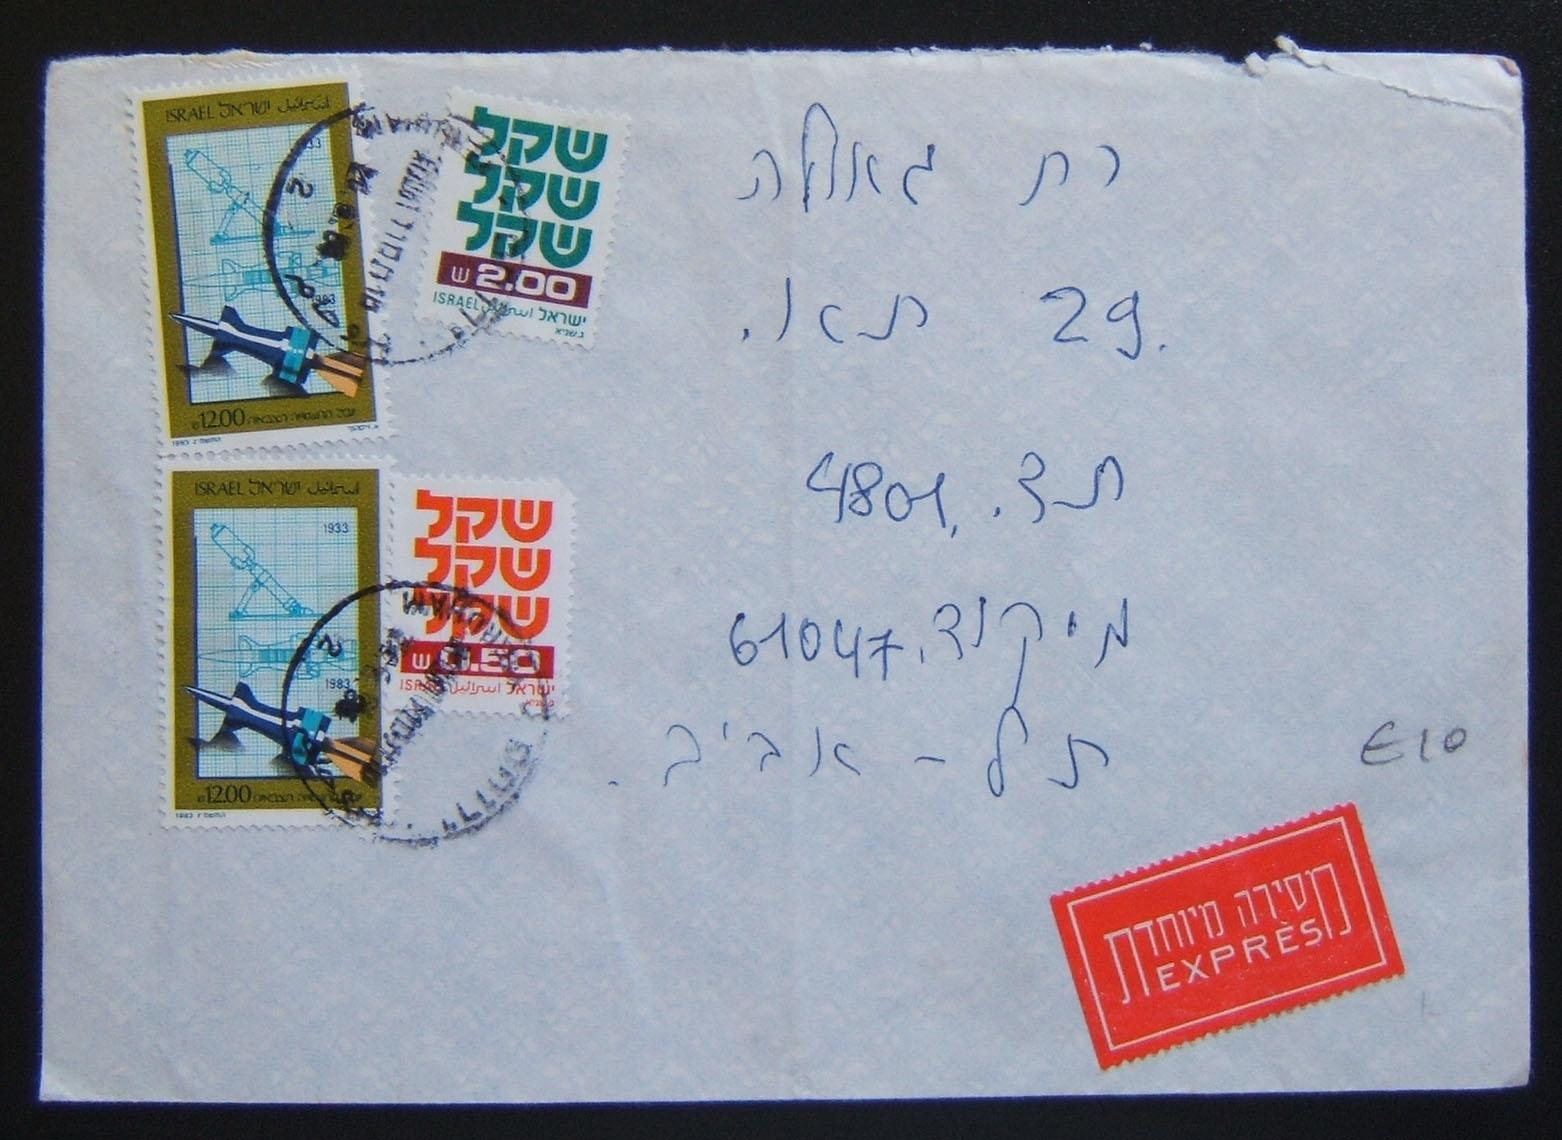 1983 Shekel inflation cover: 26-6-1983 express commercial cover ex YERUHAM to TLV franked 26.50Sh at the DO-41 period rate using 2x 12Sh 1983 IMI Ba848 + 2Sh & 0.50Sh 1980 Shekel D